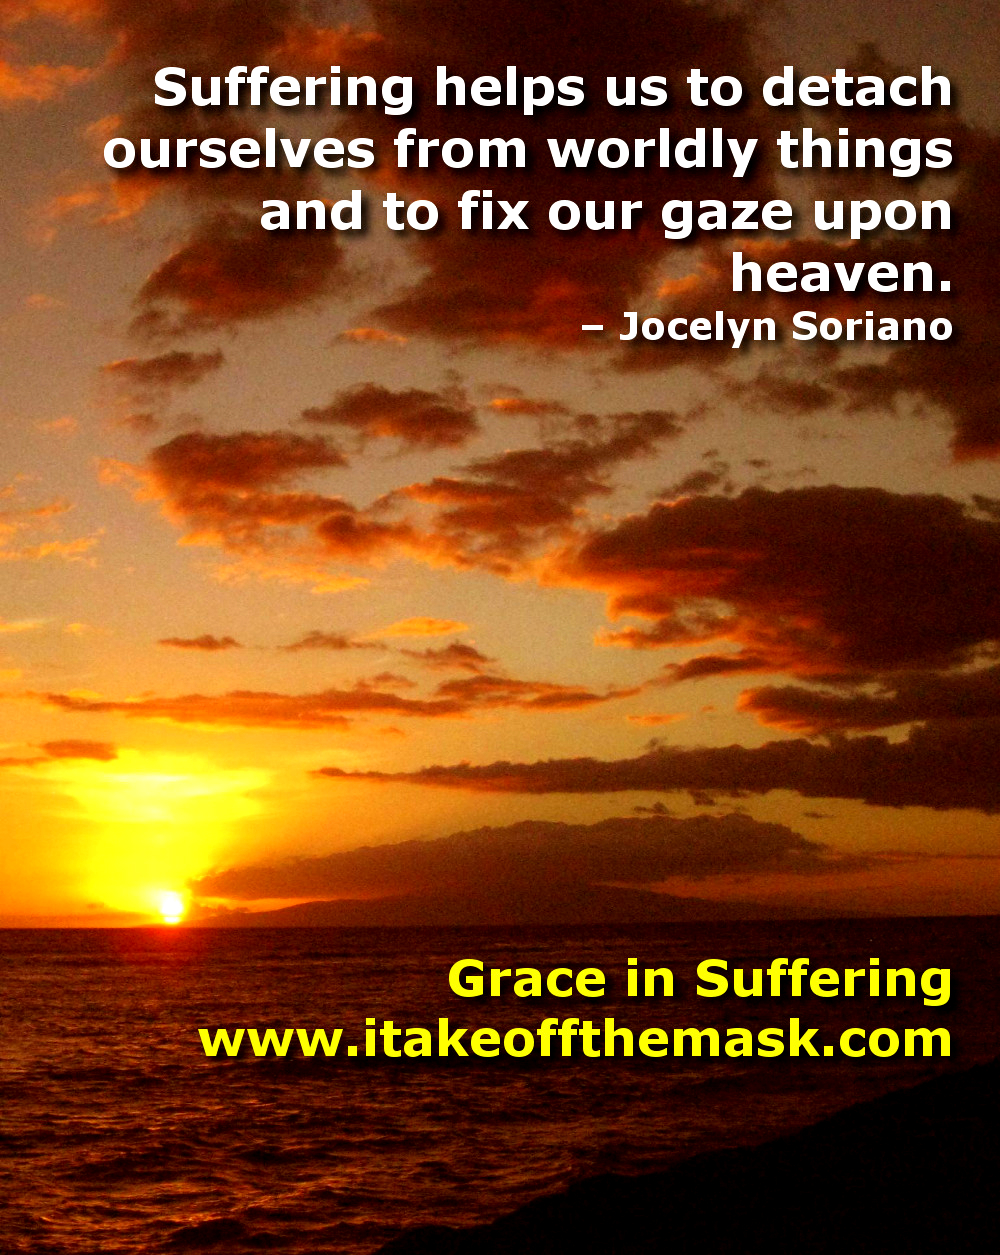 Grace in Suffering